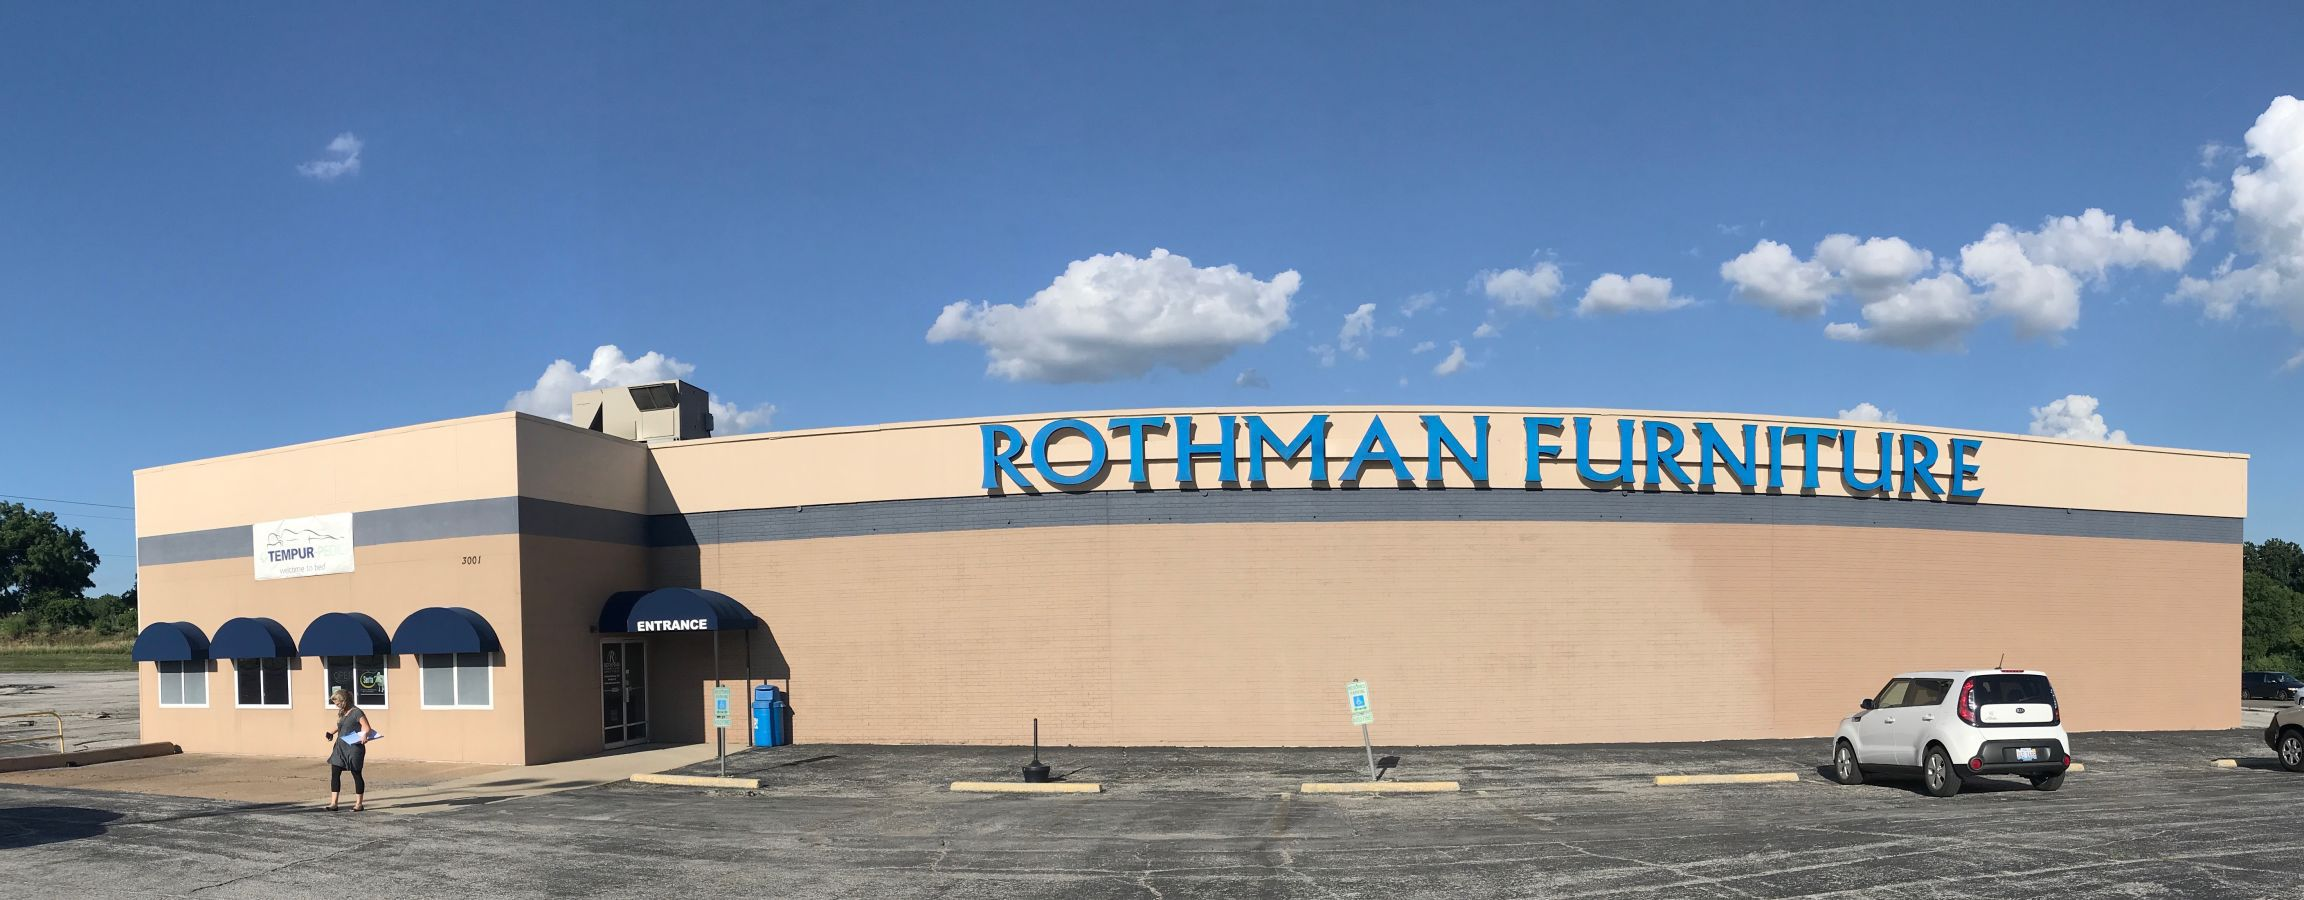 Good Rothman Furniture